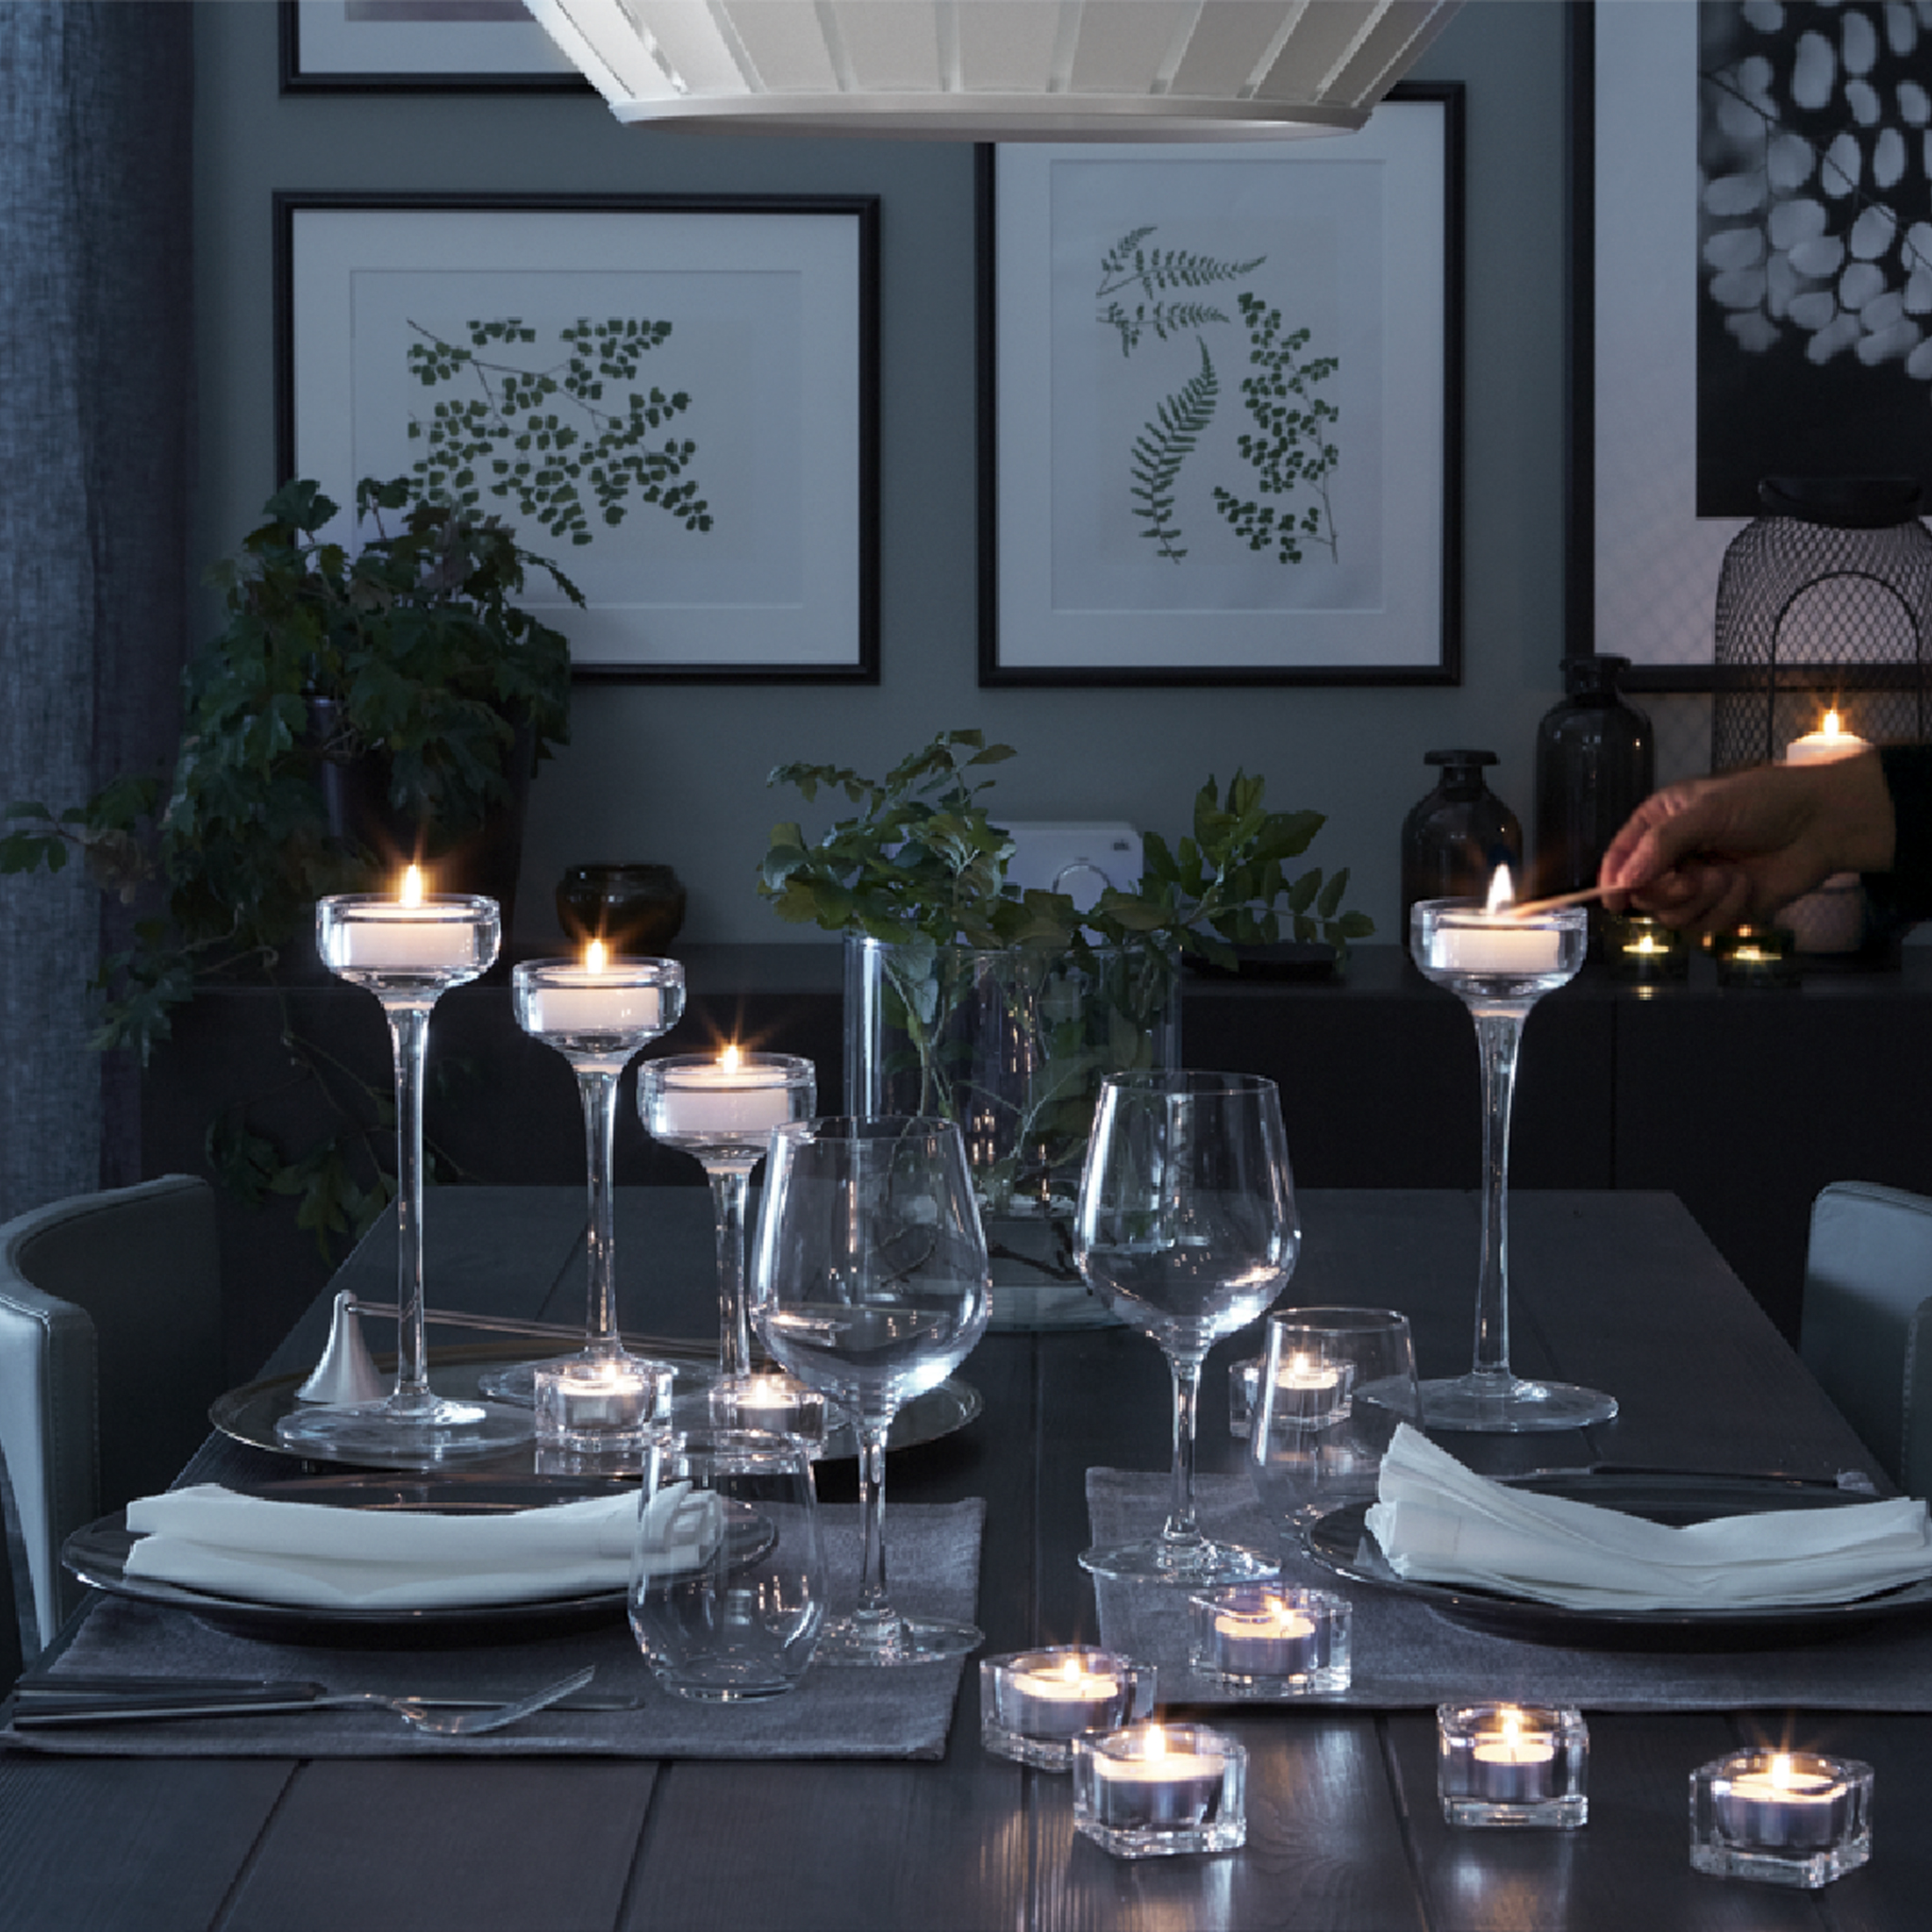 Romantic dinnertable with candles and soft lighting for a relaxing mood.